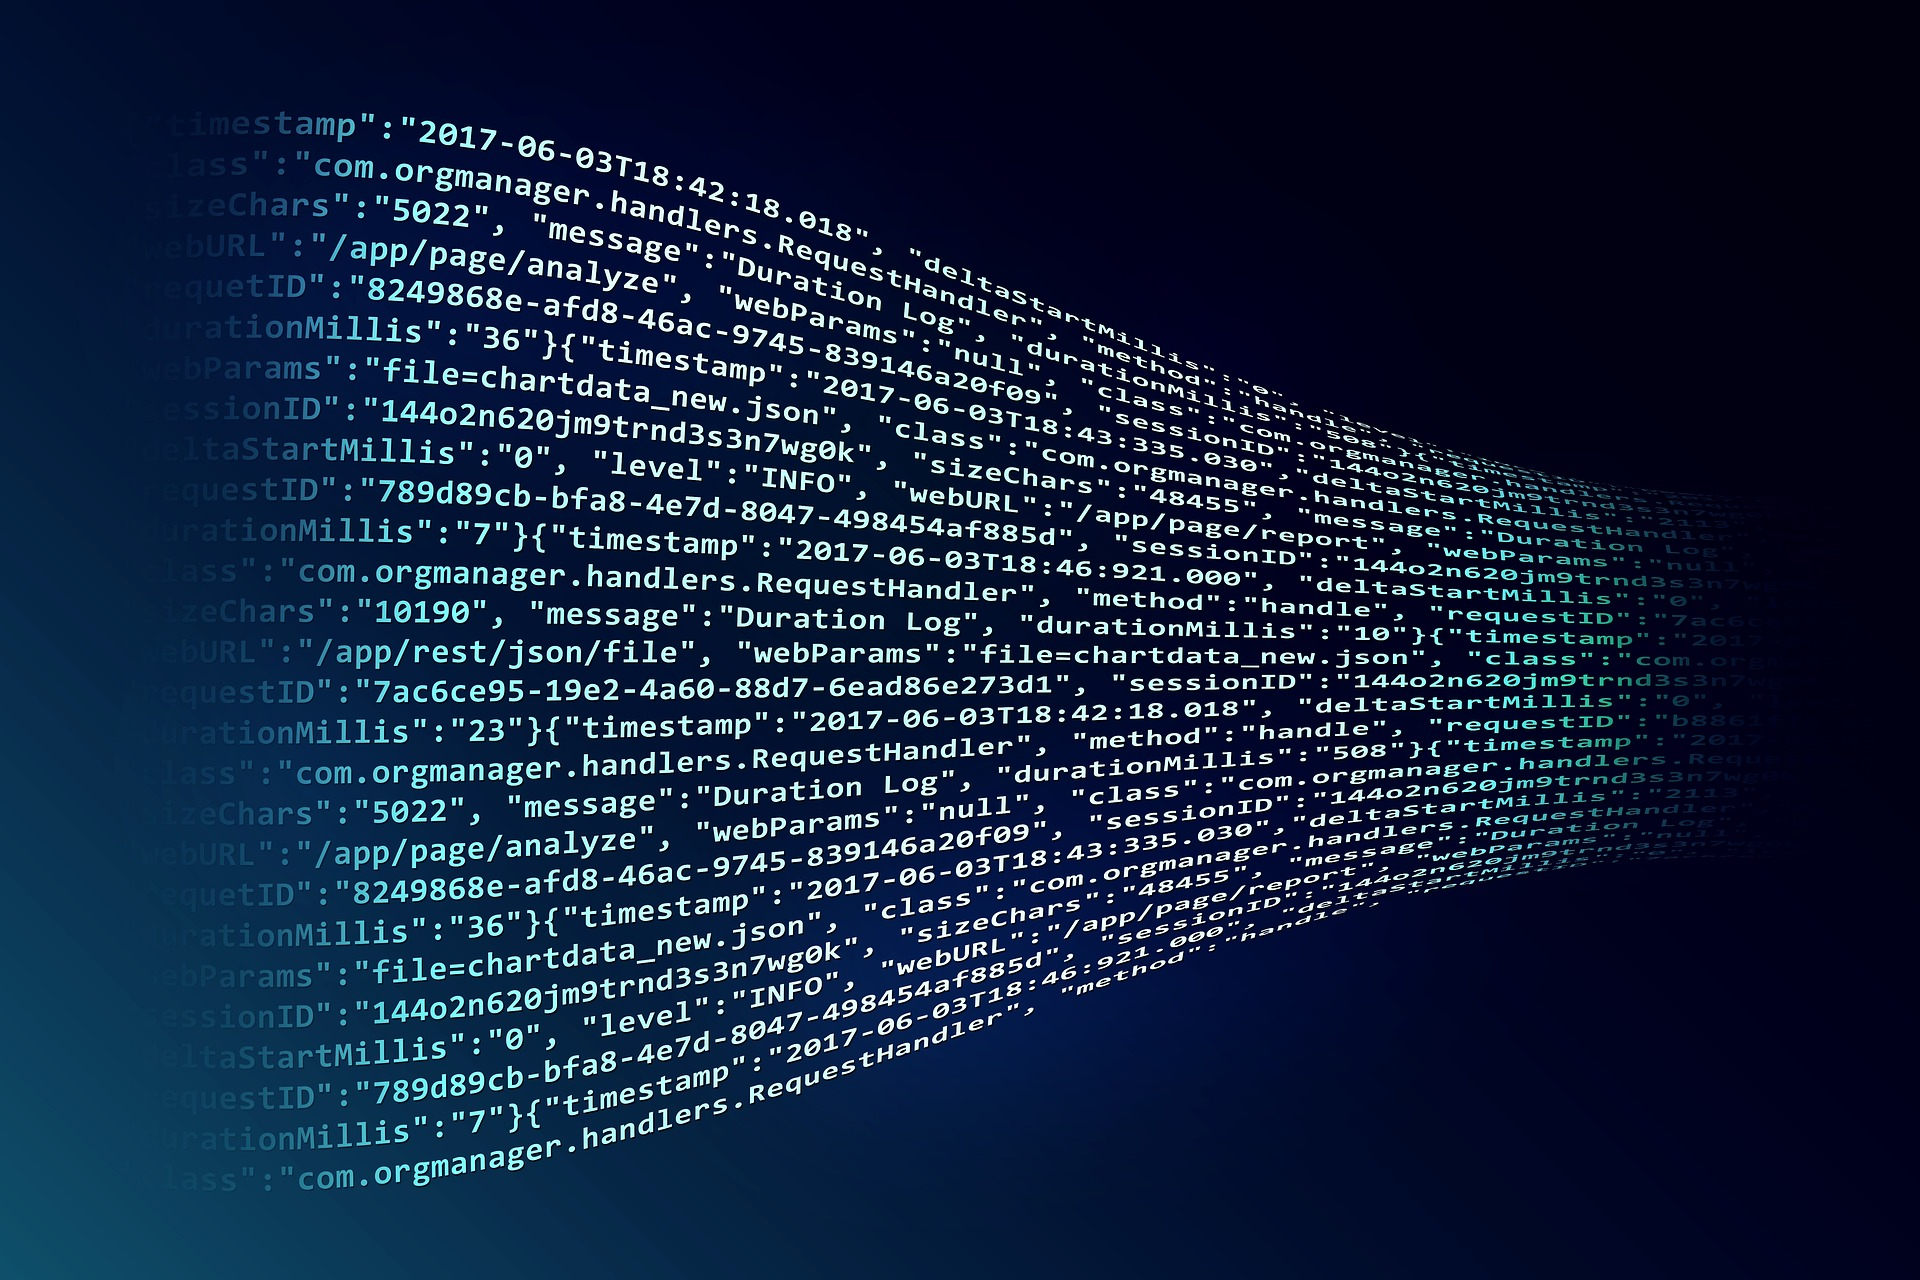 Big Data Security Issues for 2020